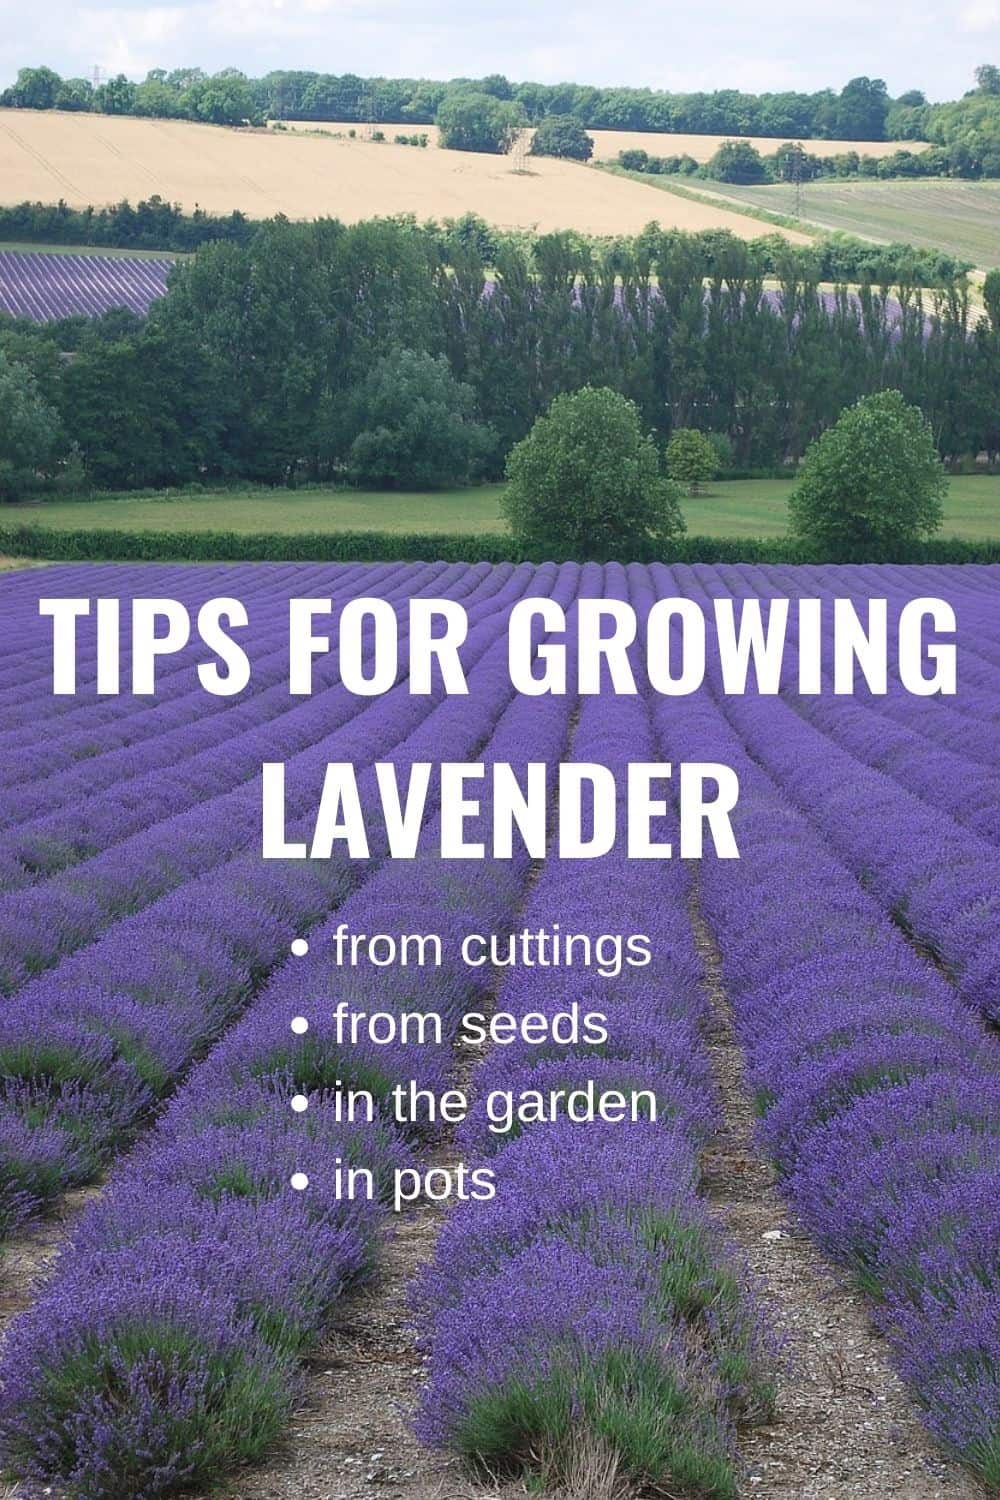 tips for growing lavender: from cuttings, from seeds, in the garden, and in pots